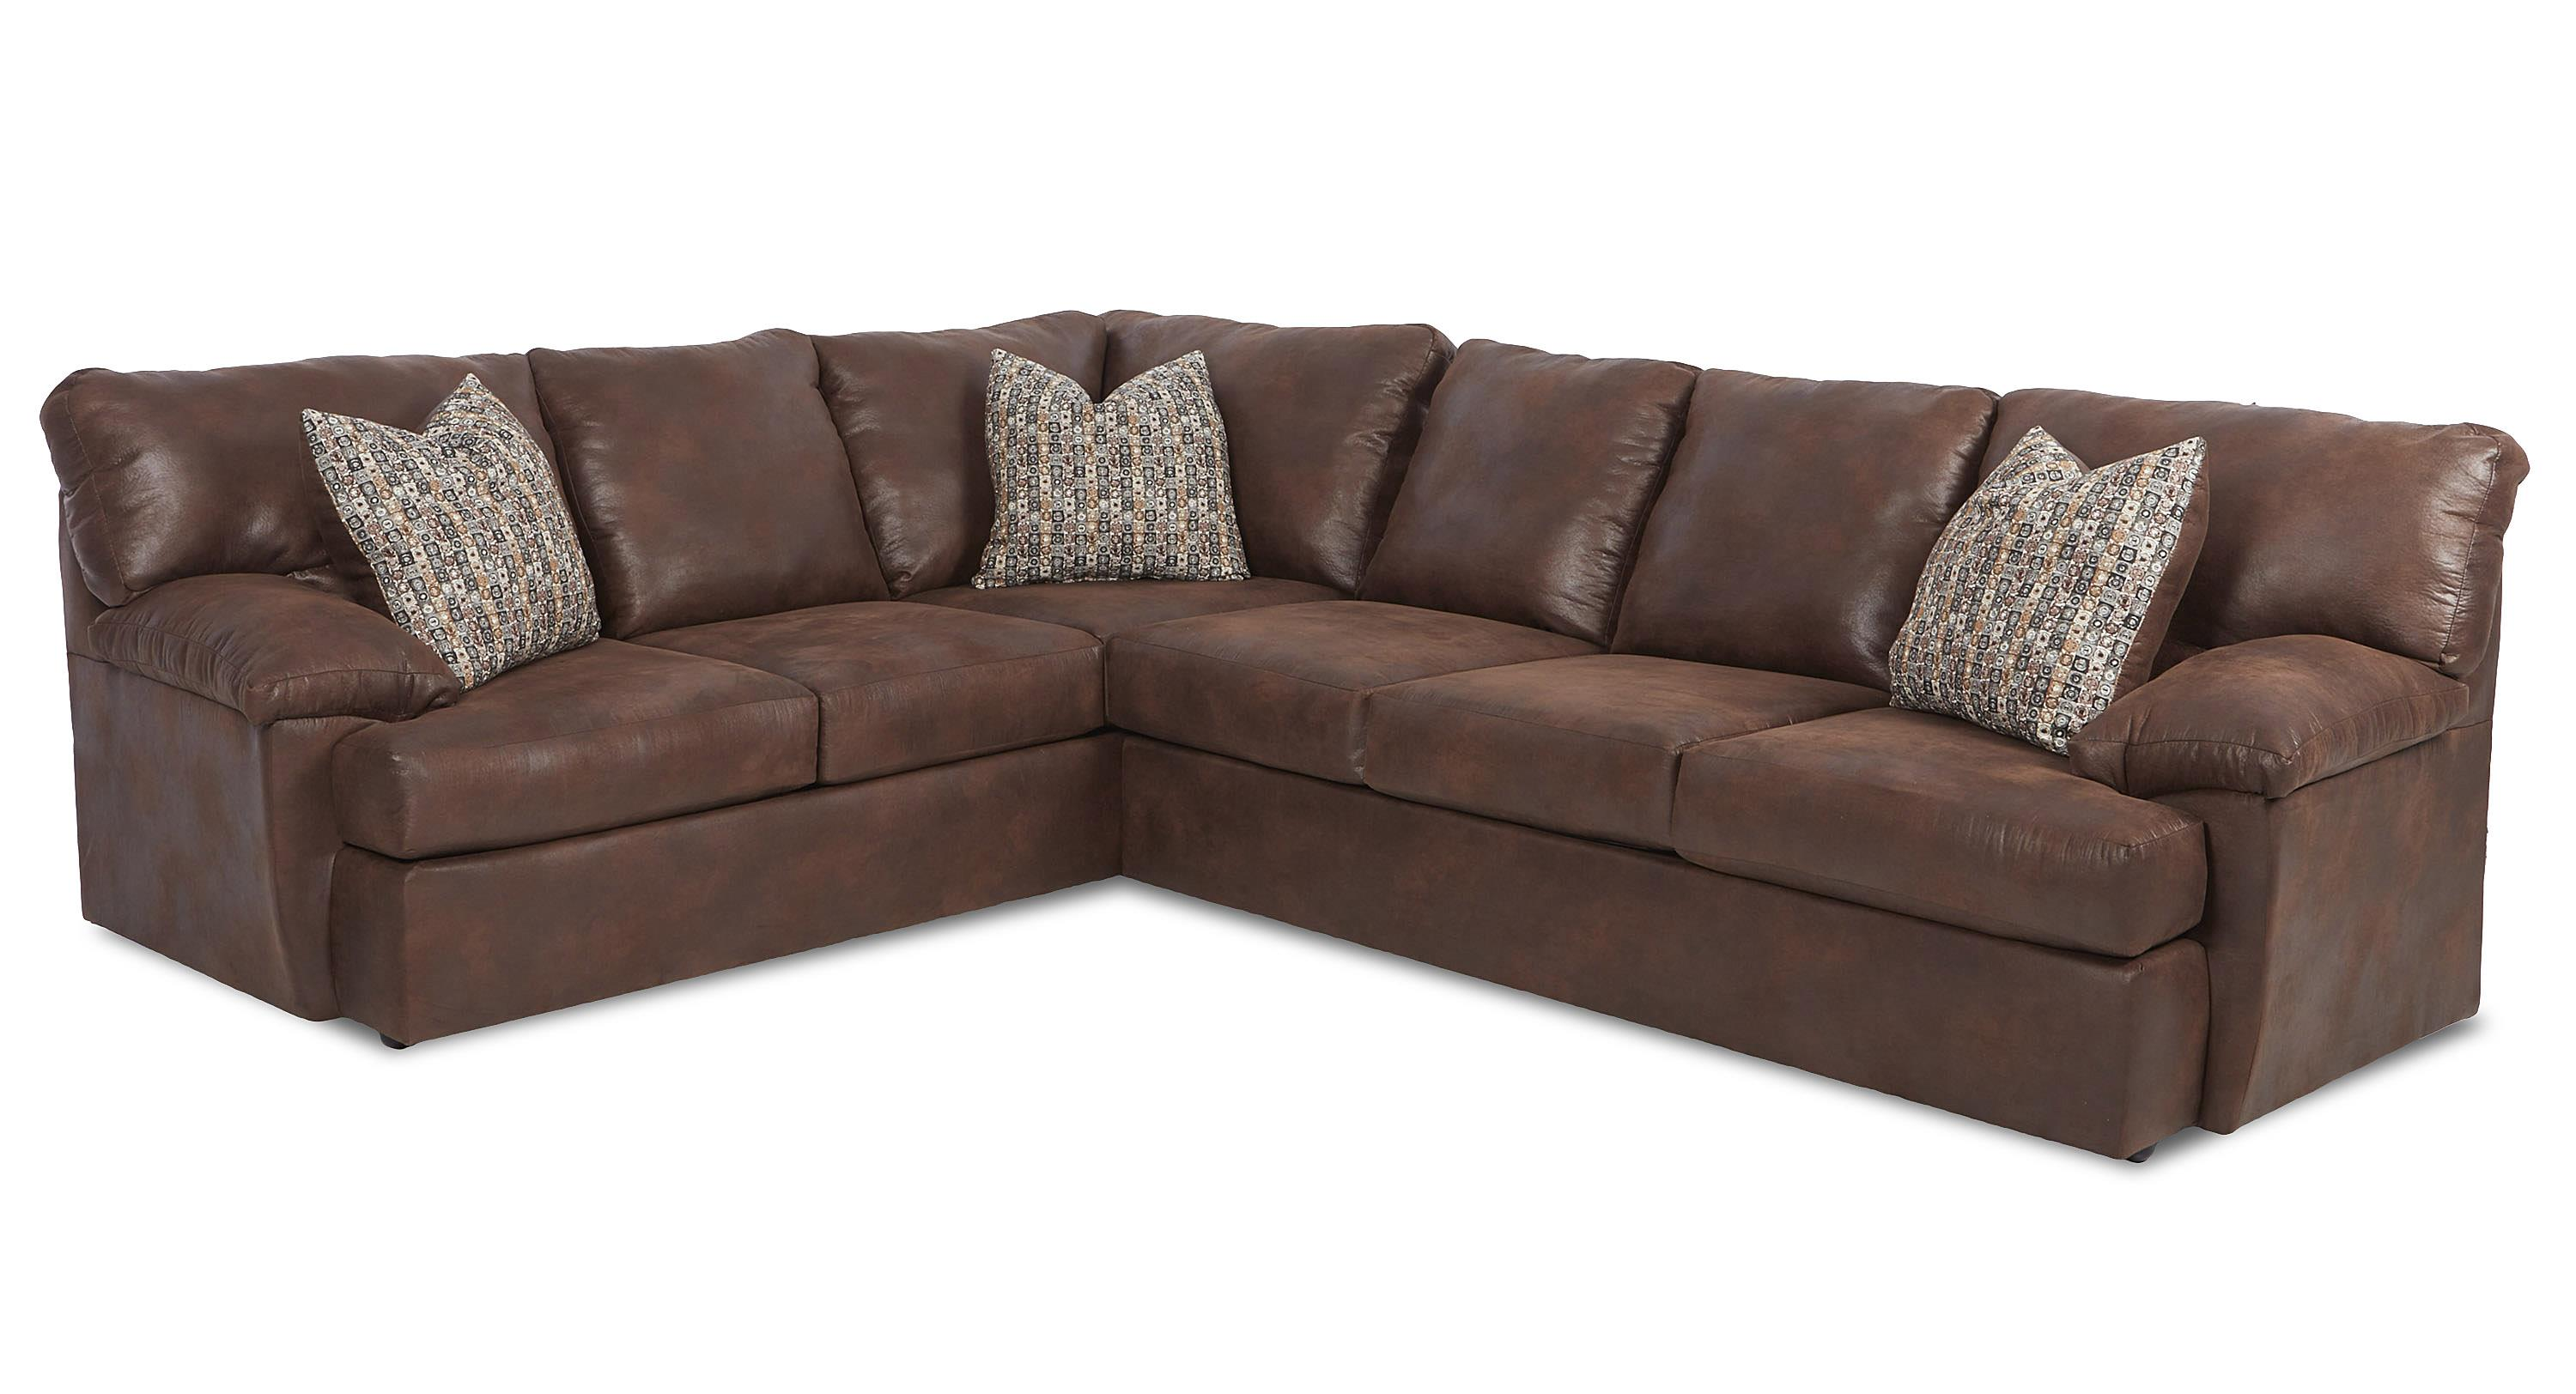 Casual Sectional Sofa by Klaussner